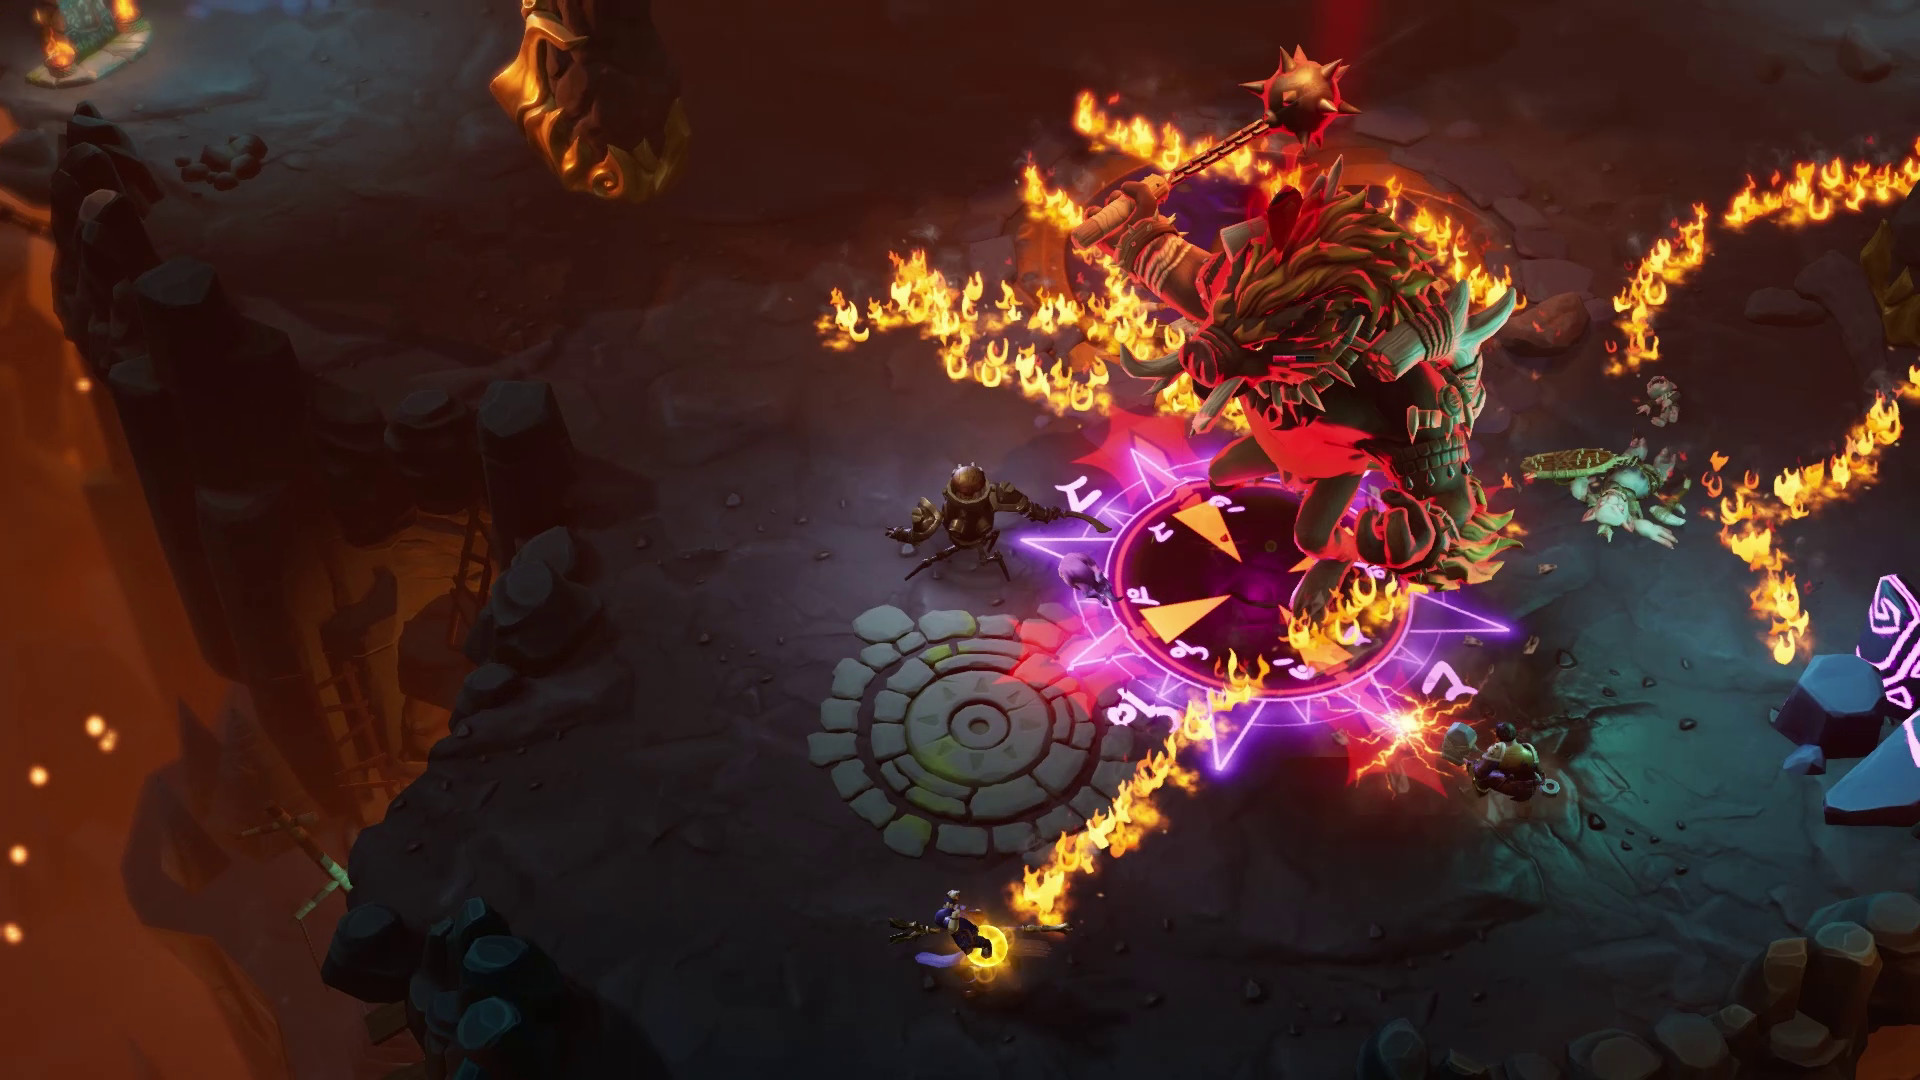 New Torchlight III trailer focuses on classes, companions & much more